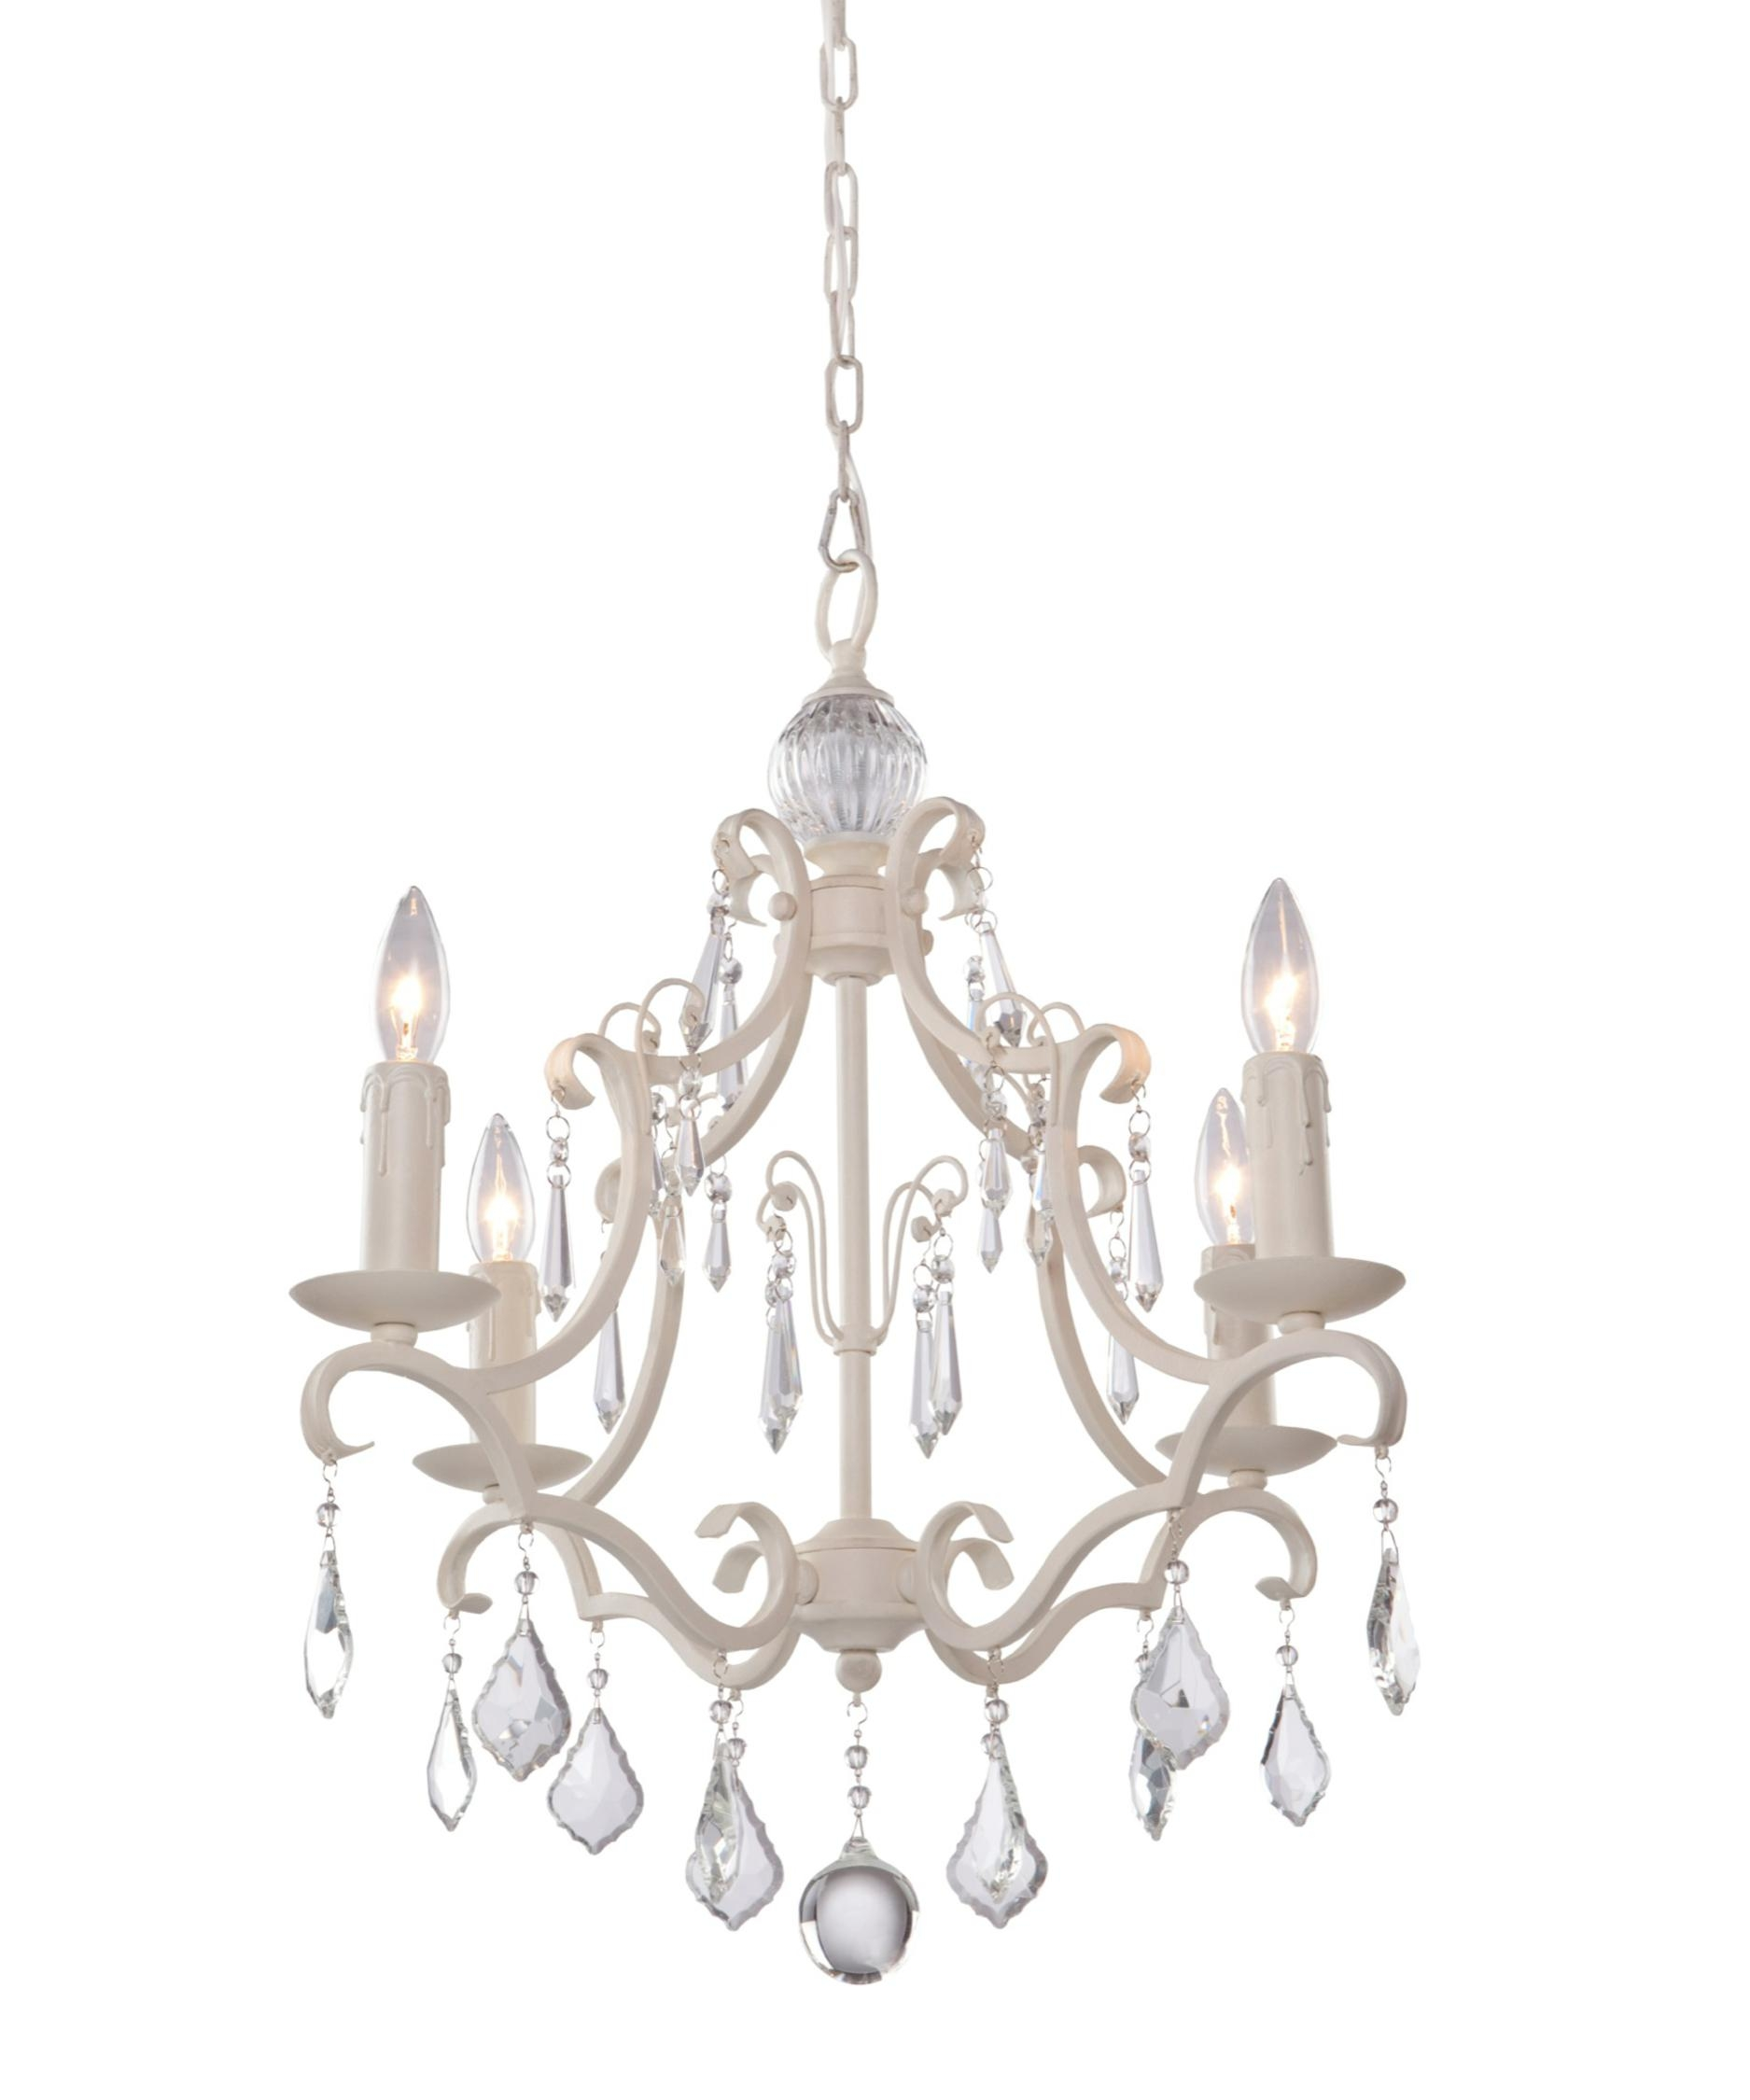 Artcraft Cl1574 Vintage 17 Inch Wide 4 Light Mini Chandelier Within Vintage Chandelier (#3 of 12)